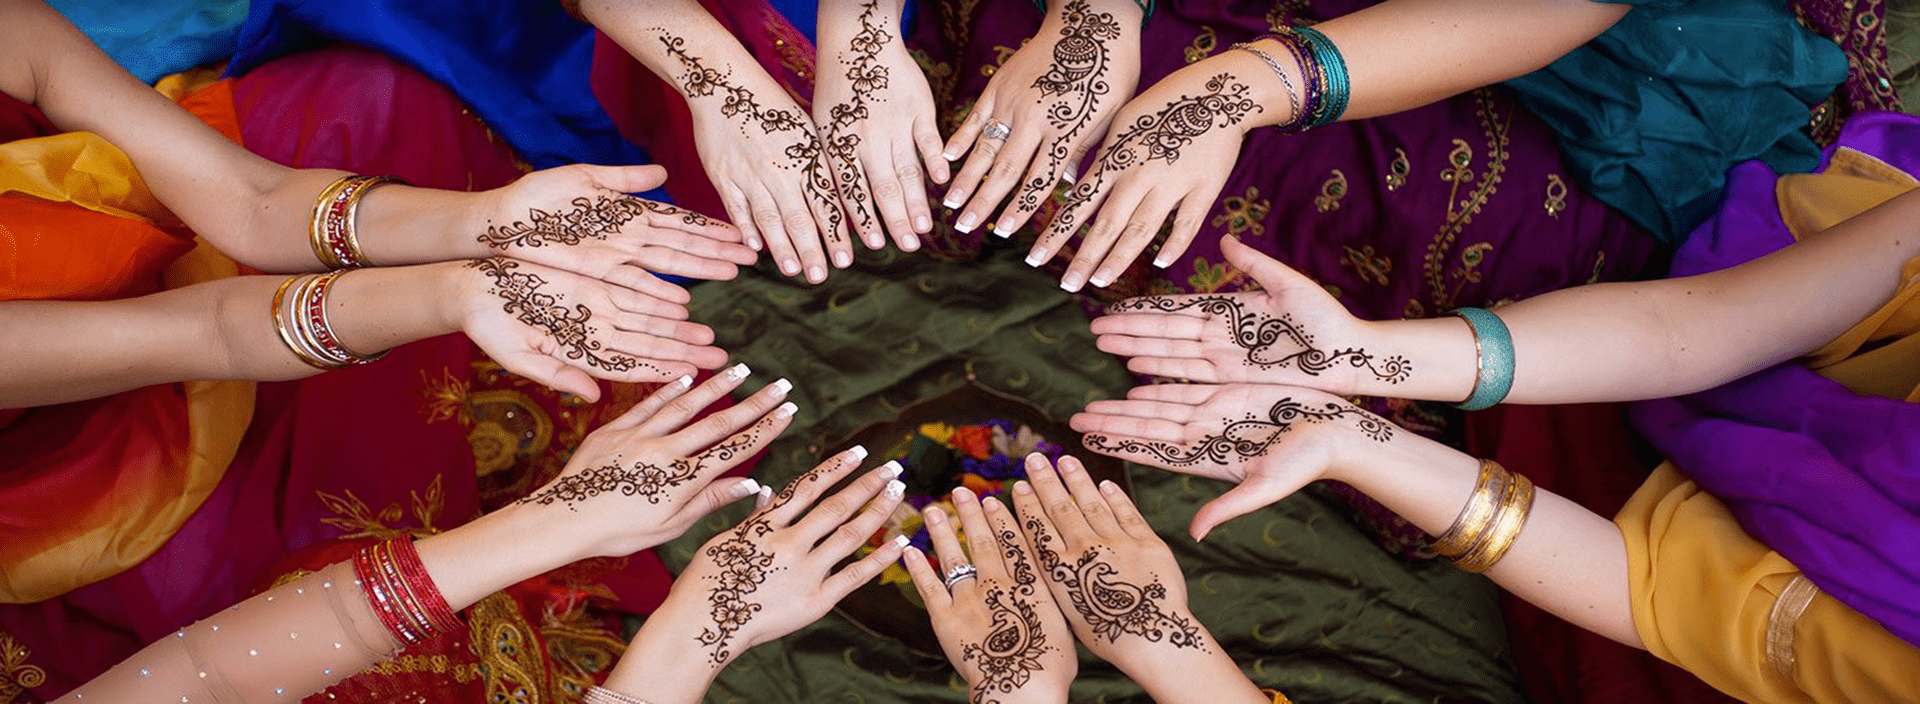 henna-party-artist-in-atlanta-mehendi-night-events